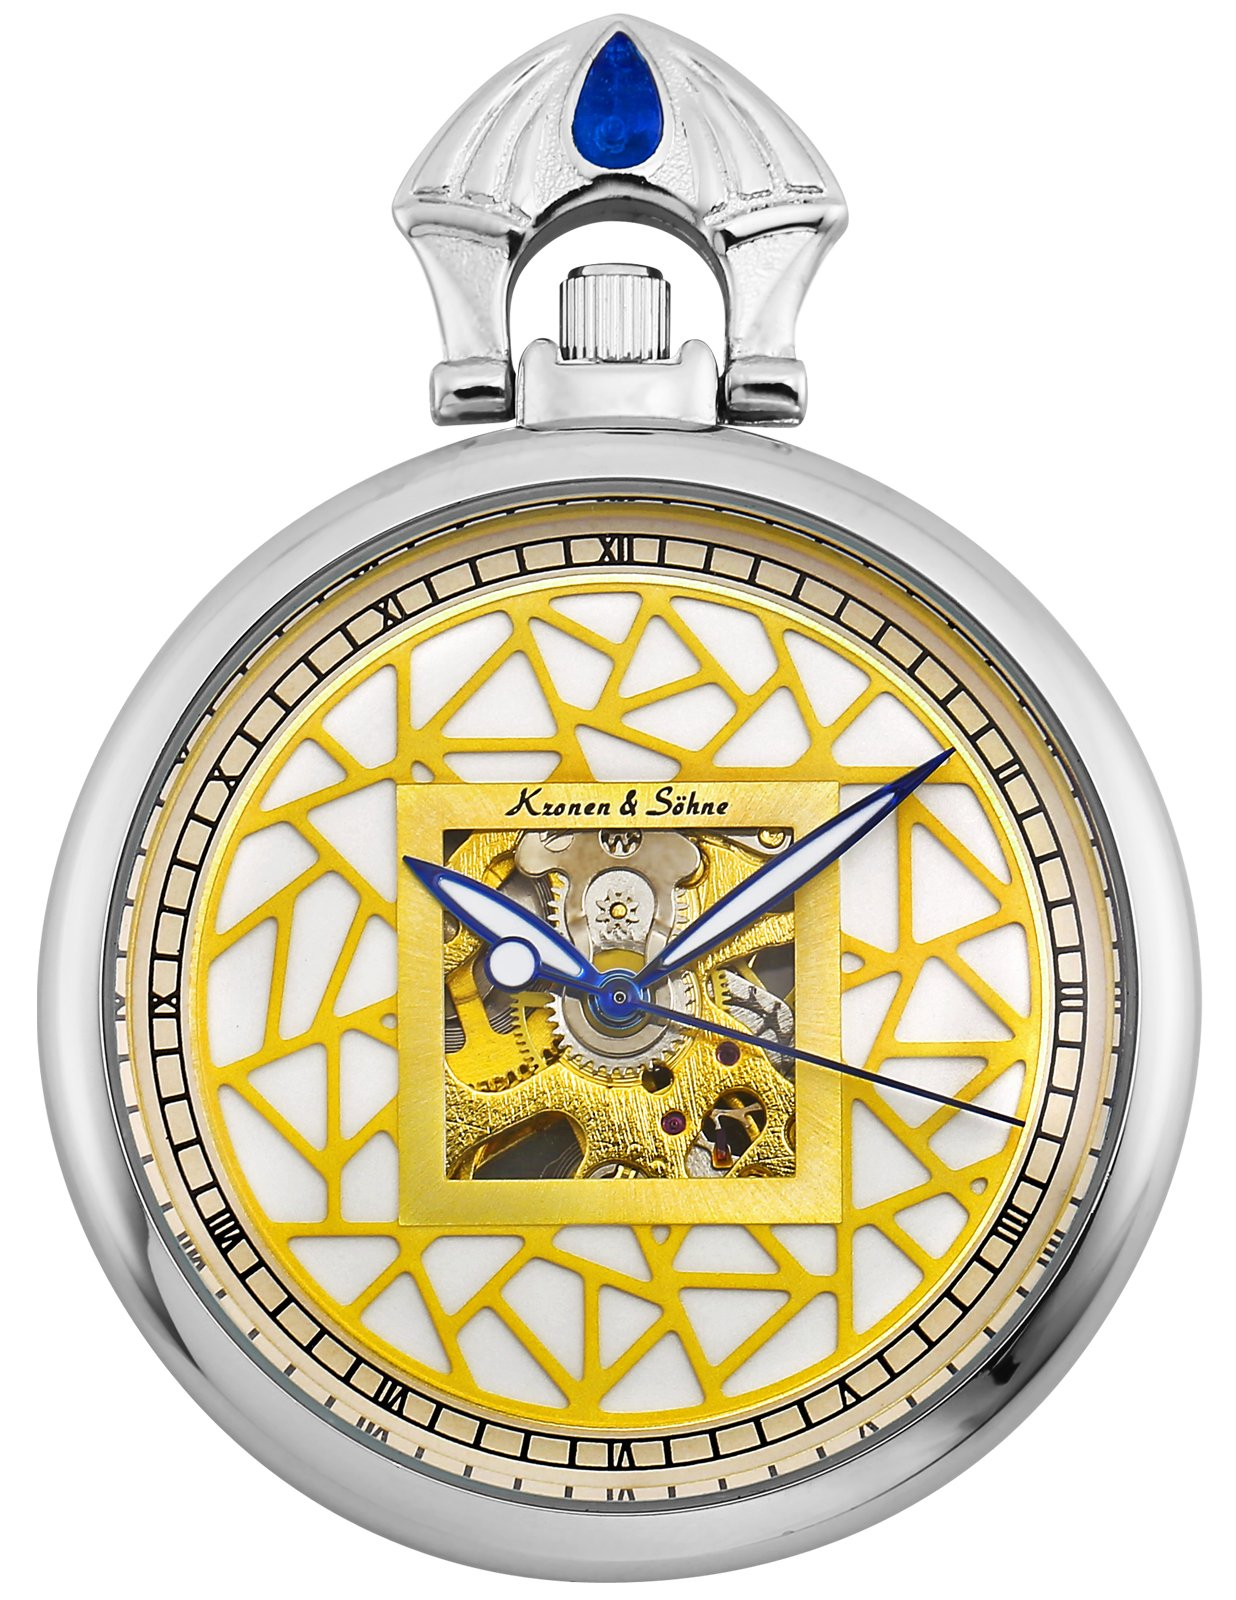 KS Full Hunter Abstract Pattern Dial Roman Numerals Skeleton Mechanical Pocket Watch KSP110